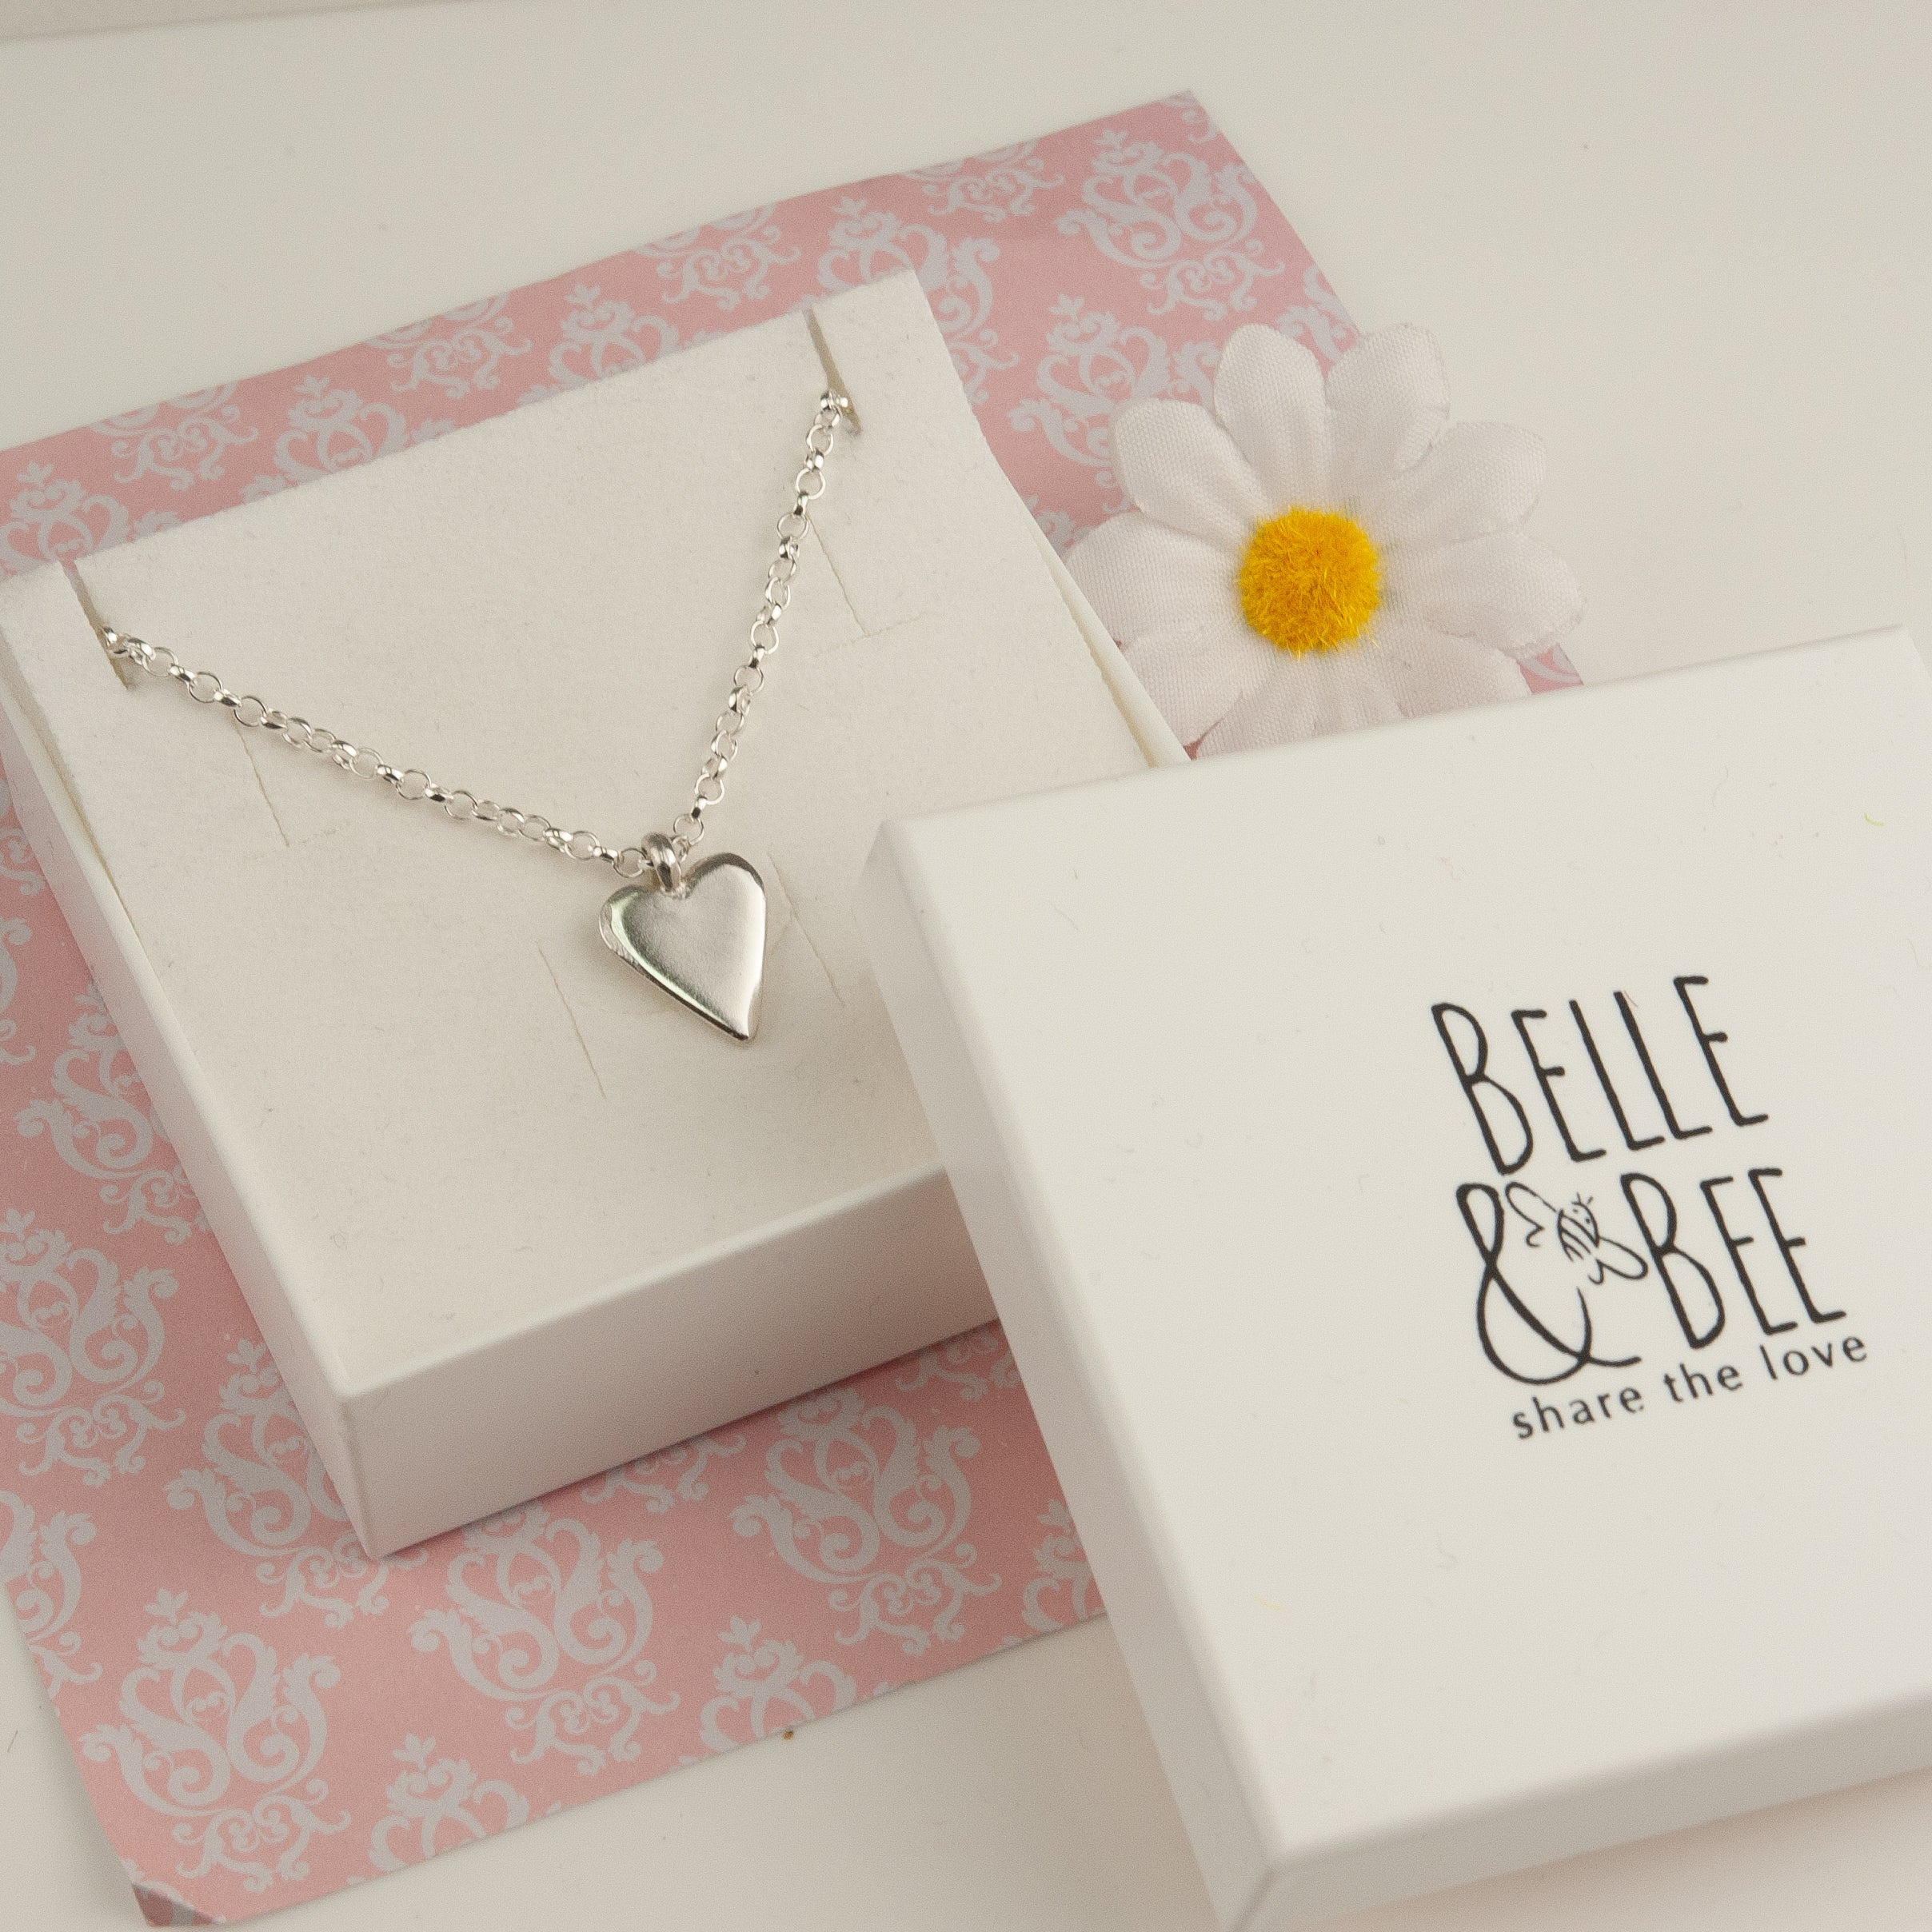 Belle & Bee Sterling silver heart necklace